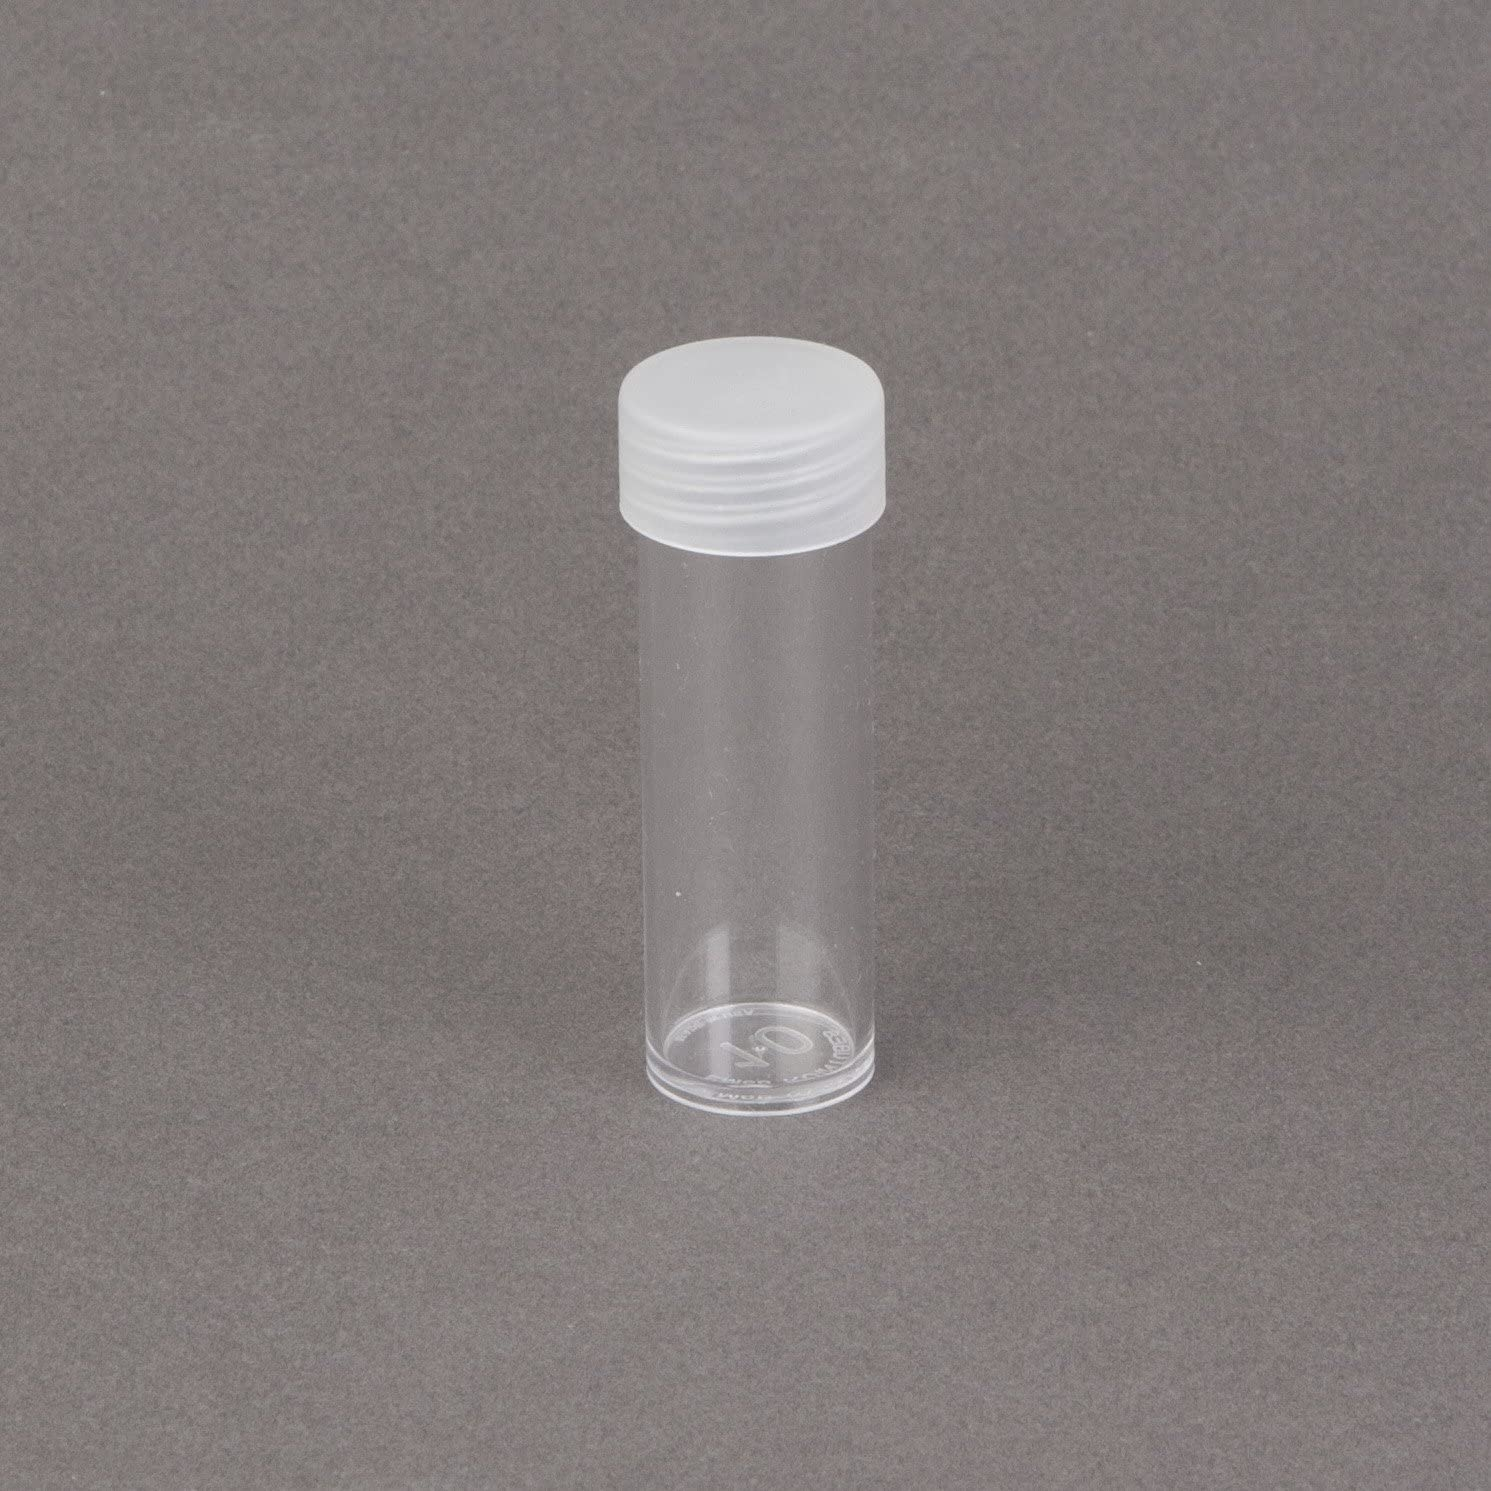 Lot of 10 Round Plastic Coin Storage Tubes for Pennies w//Screw On Caps